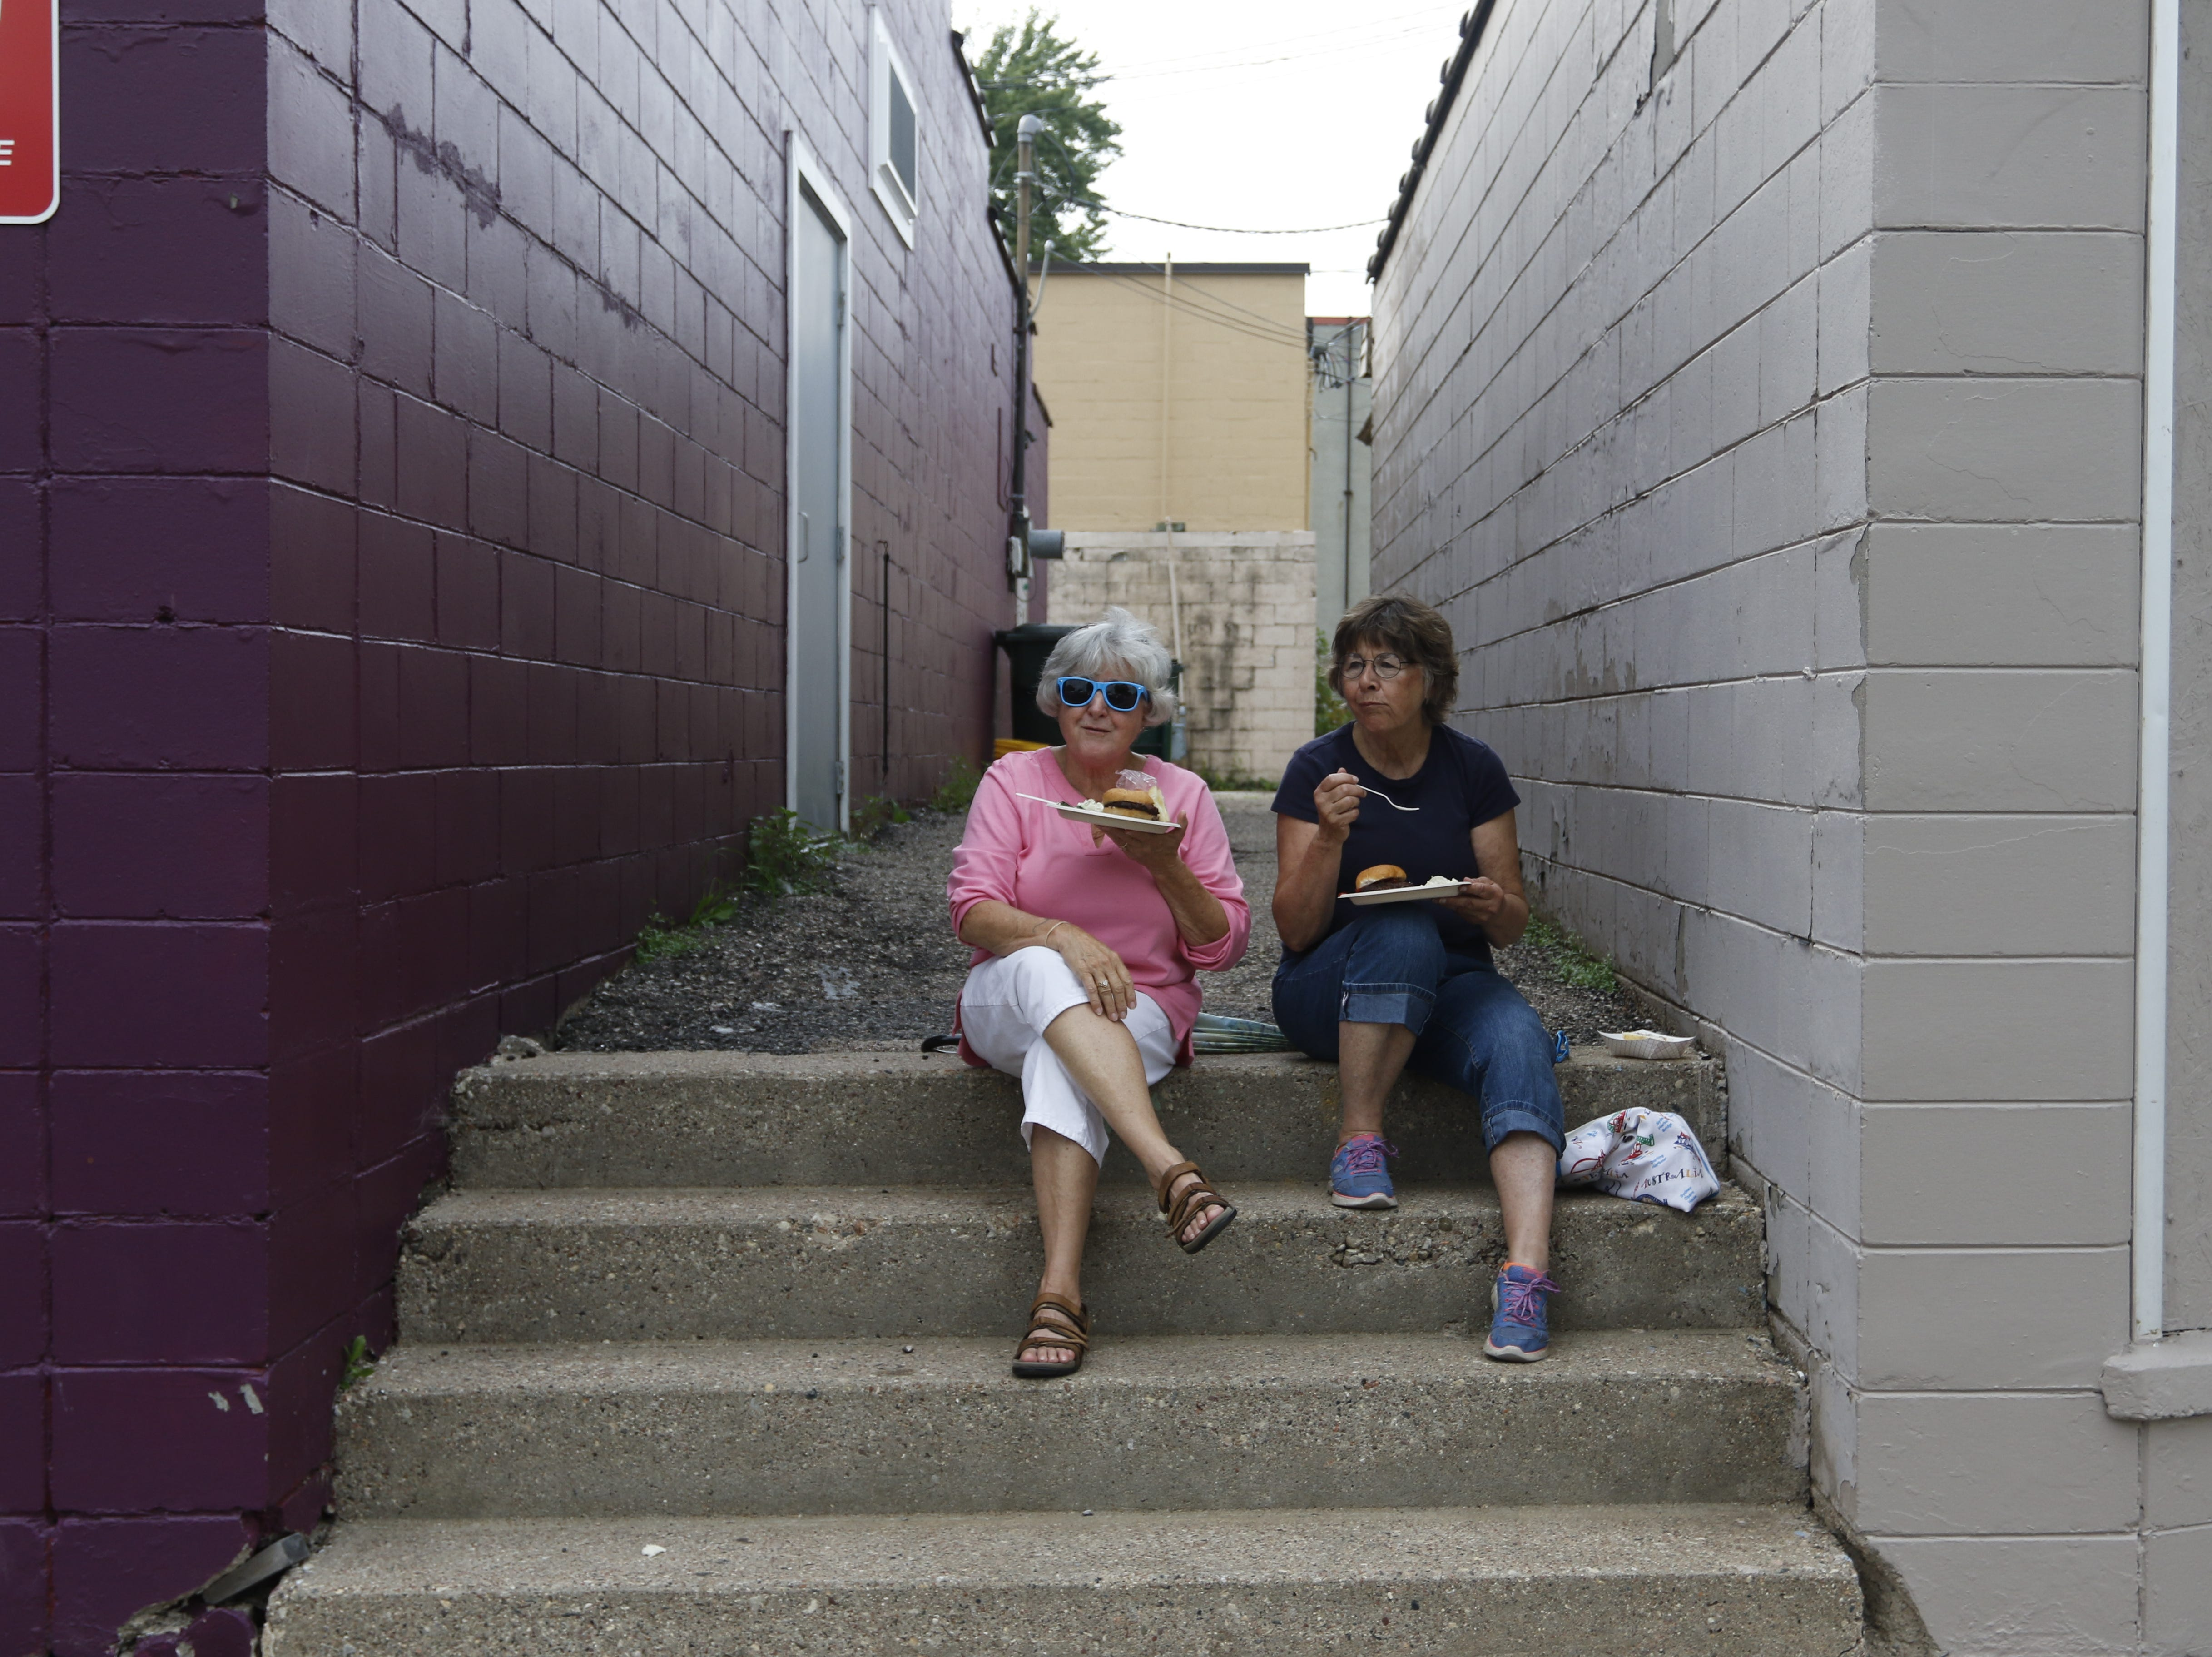 Helen Sparks, left and Dodi Saumer eat and watch the line of people waiting for corn at the Wisconsin Rapids community picnic on First Avenue South and Johnson Street Wednesday, August 1, 2018.